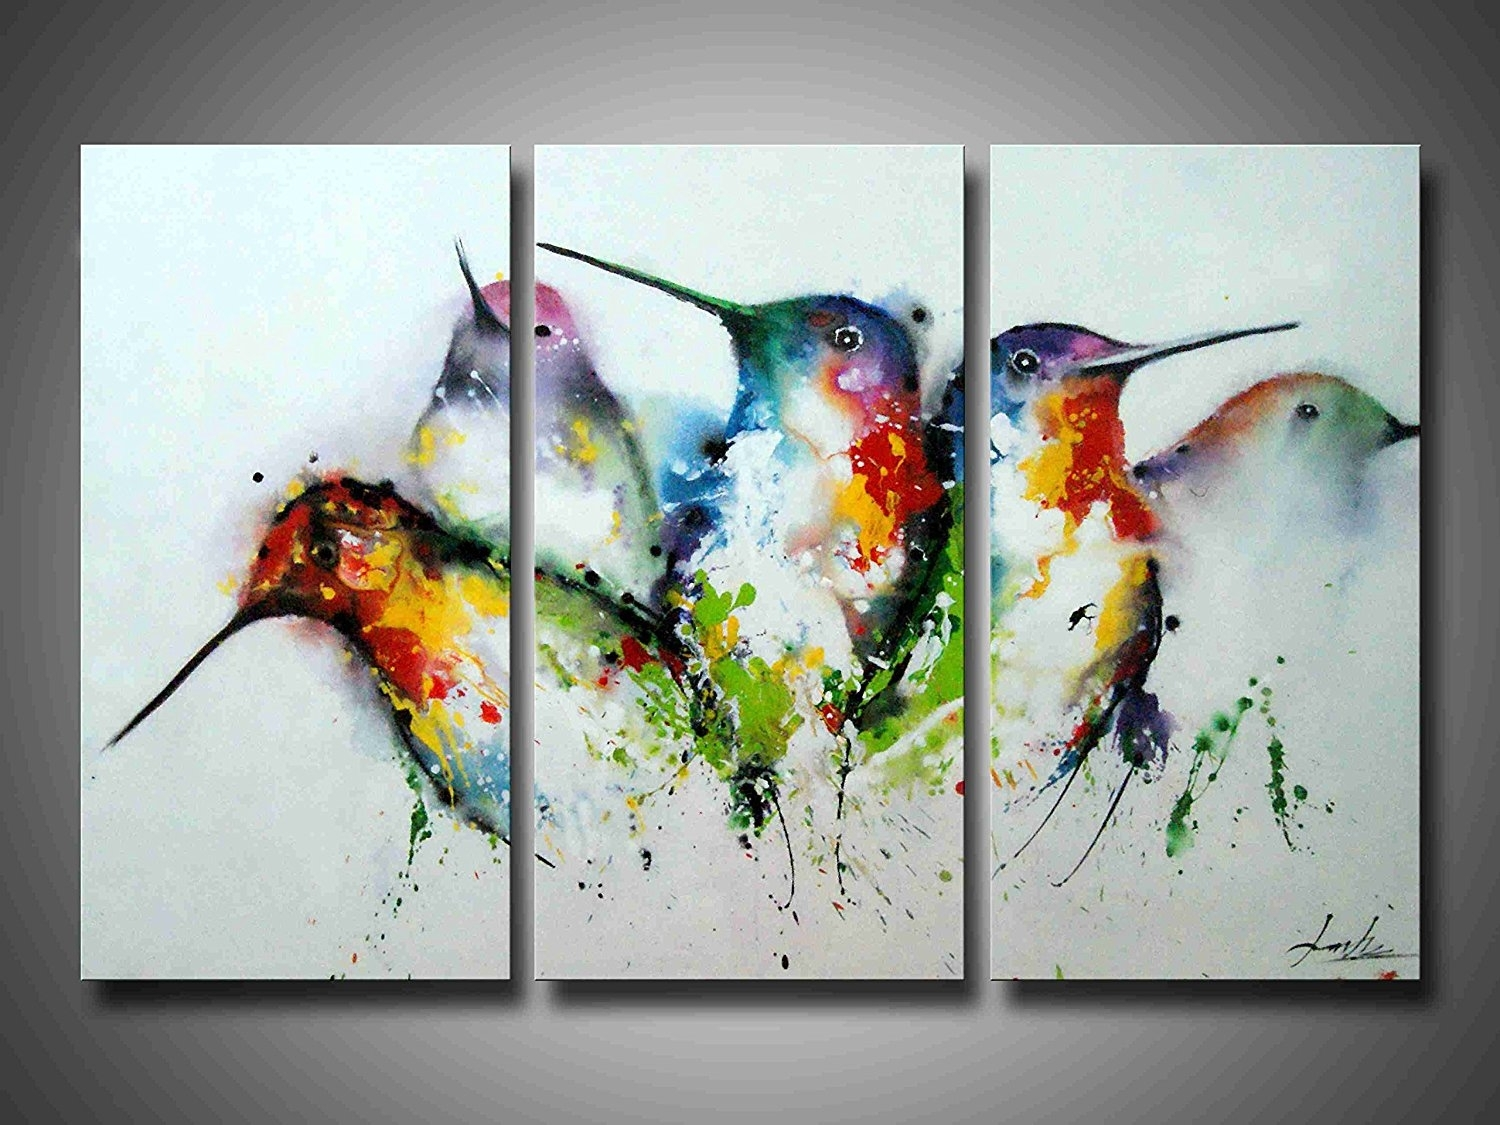 3 Piece Framed Wall Art Bird : Andrews Living Arts – Affordable 3 Inside Best And Newest Bird Framed Canvas Wall Art (View 4 of 20)